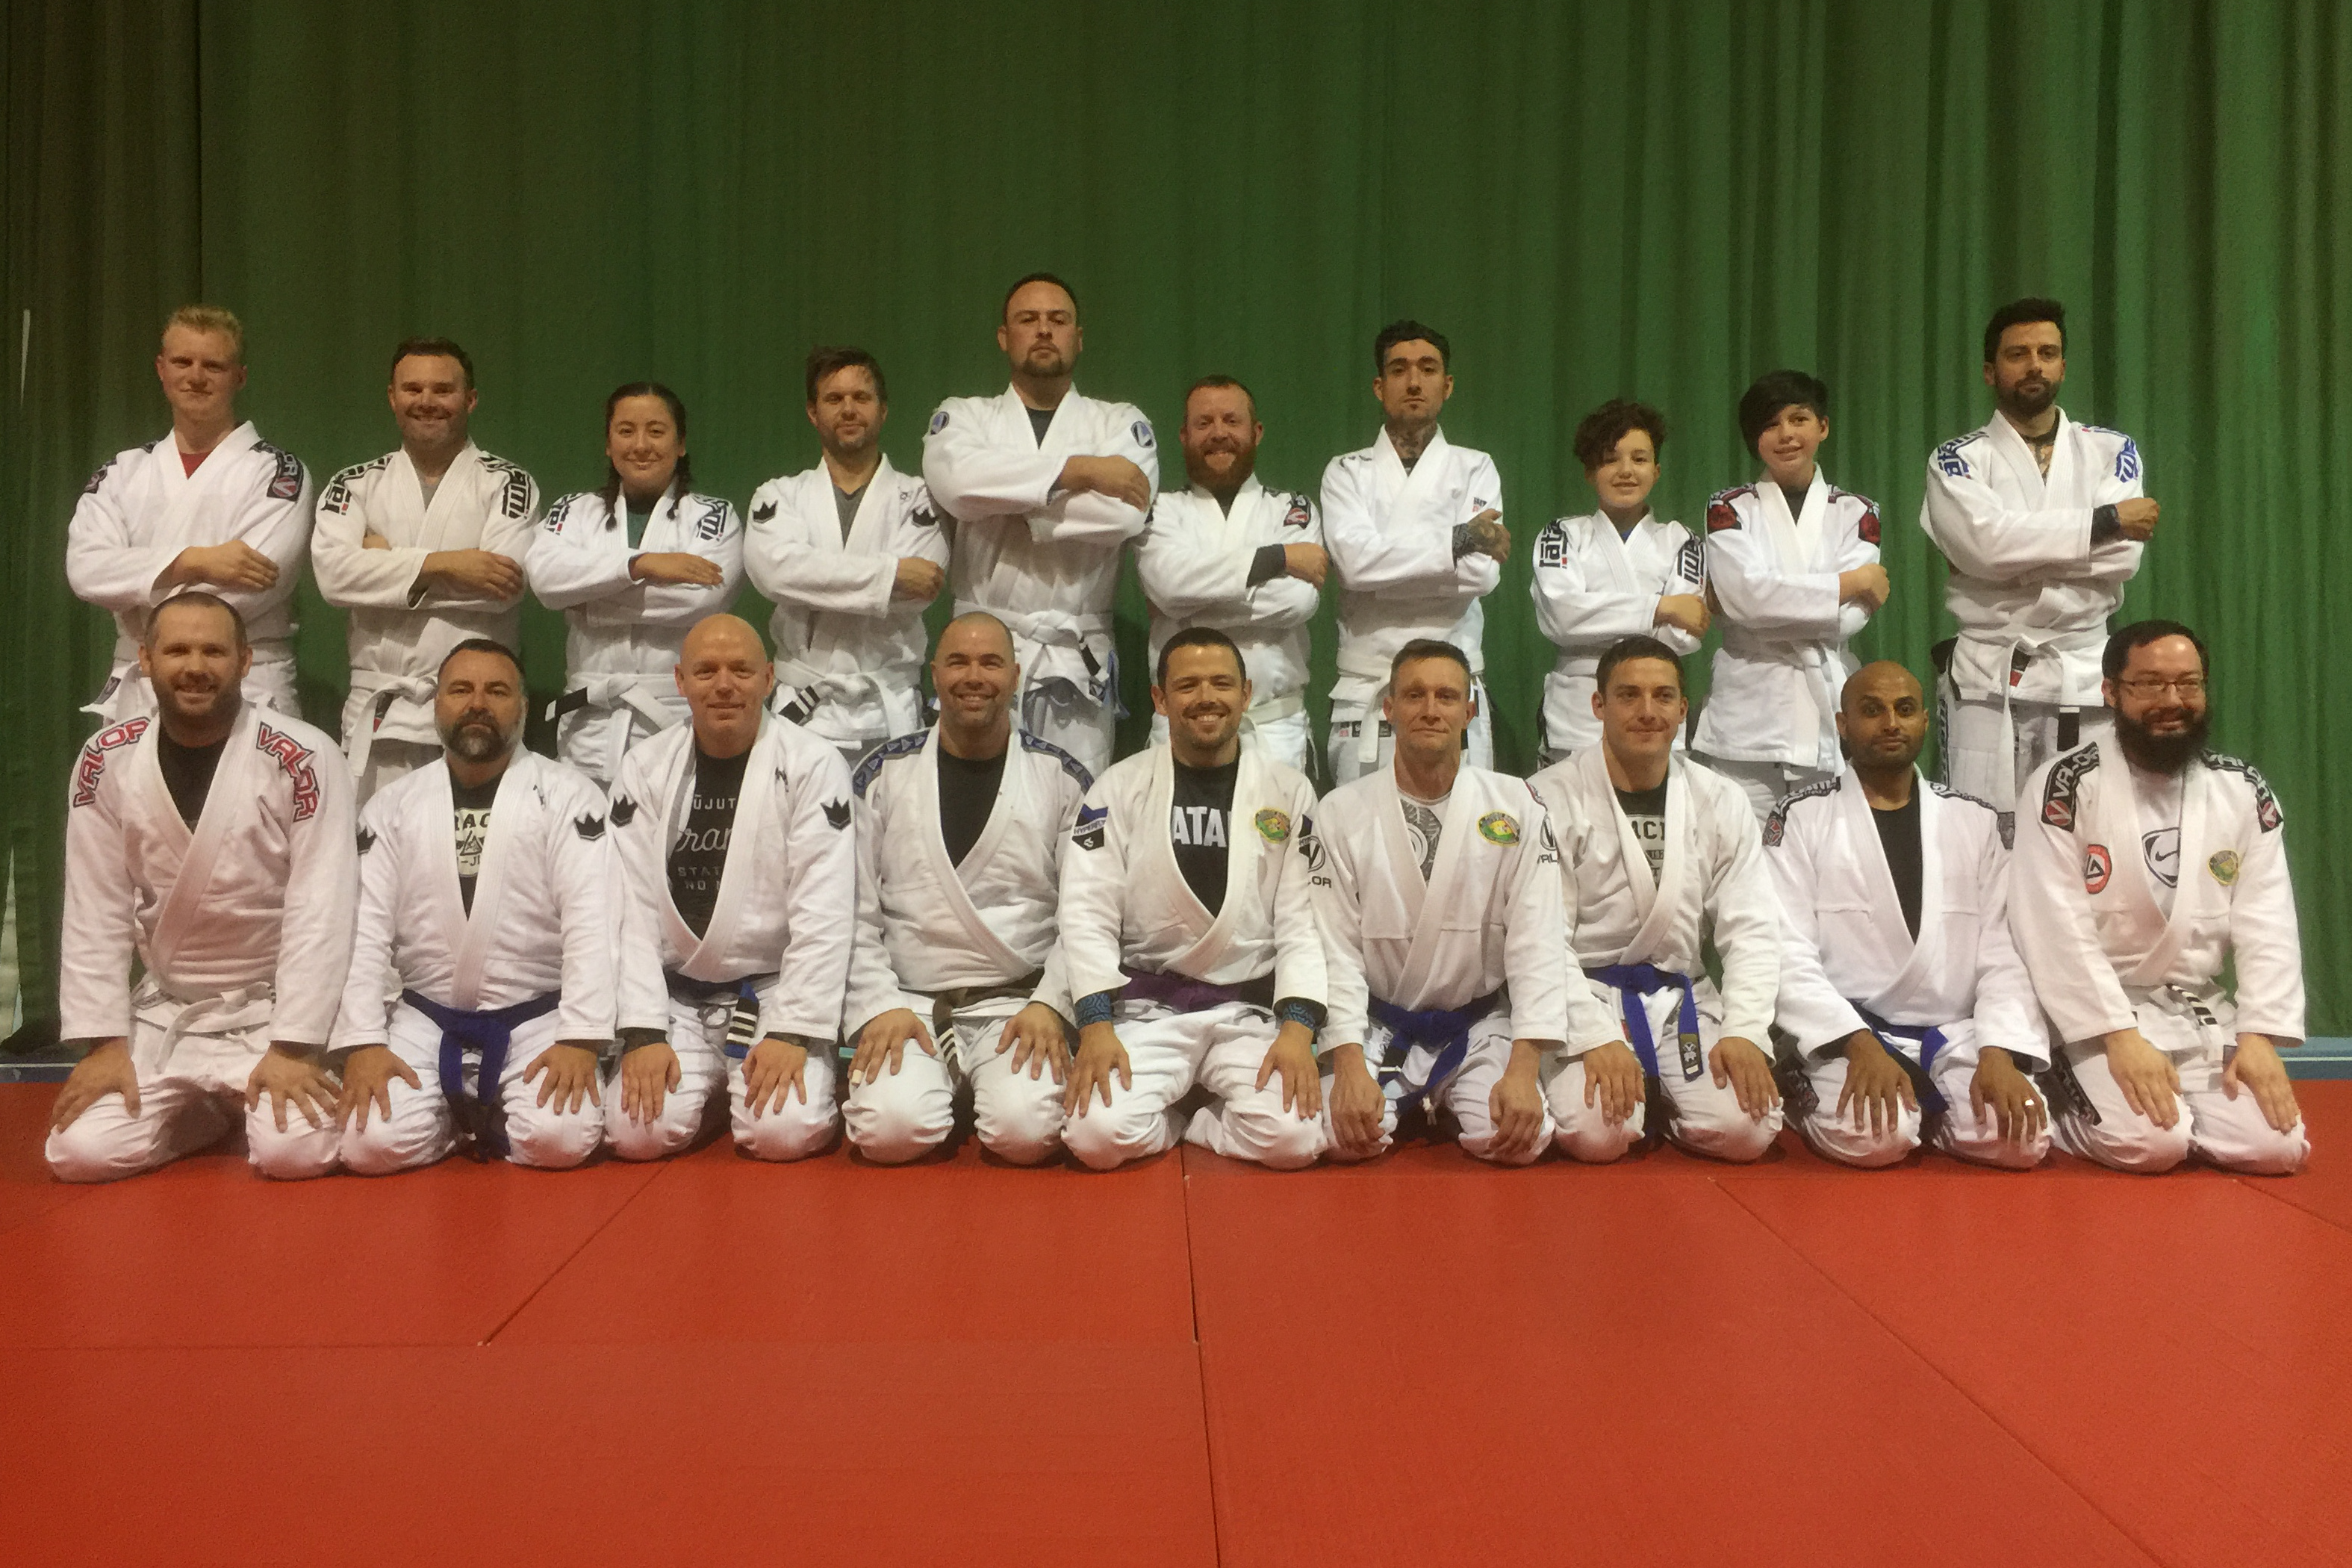 Halldor Sveinsson Visits Team Pedro Sauer UK - September 2018 | Team Pedro Sauer UK